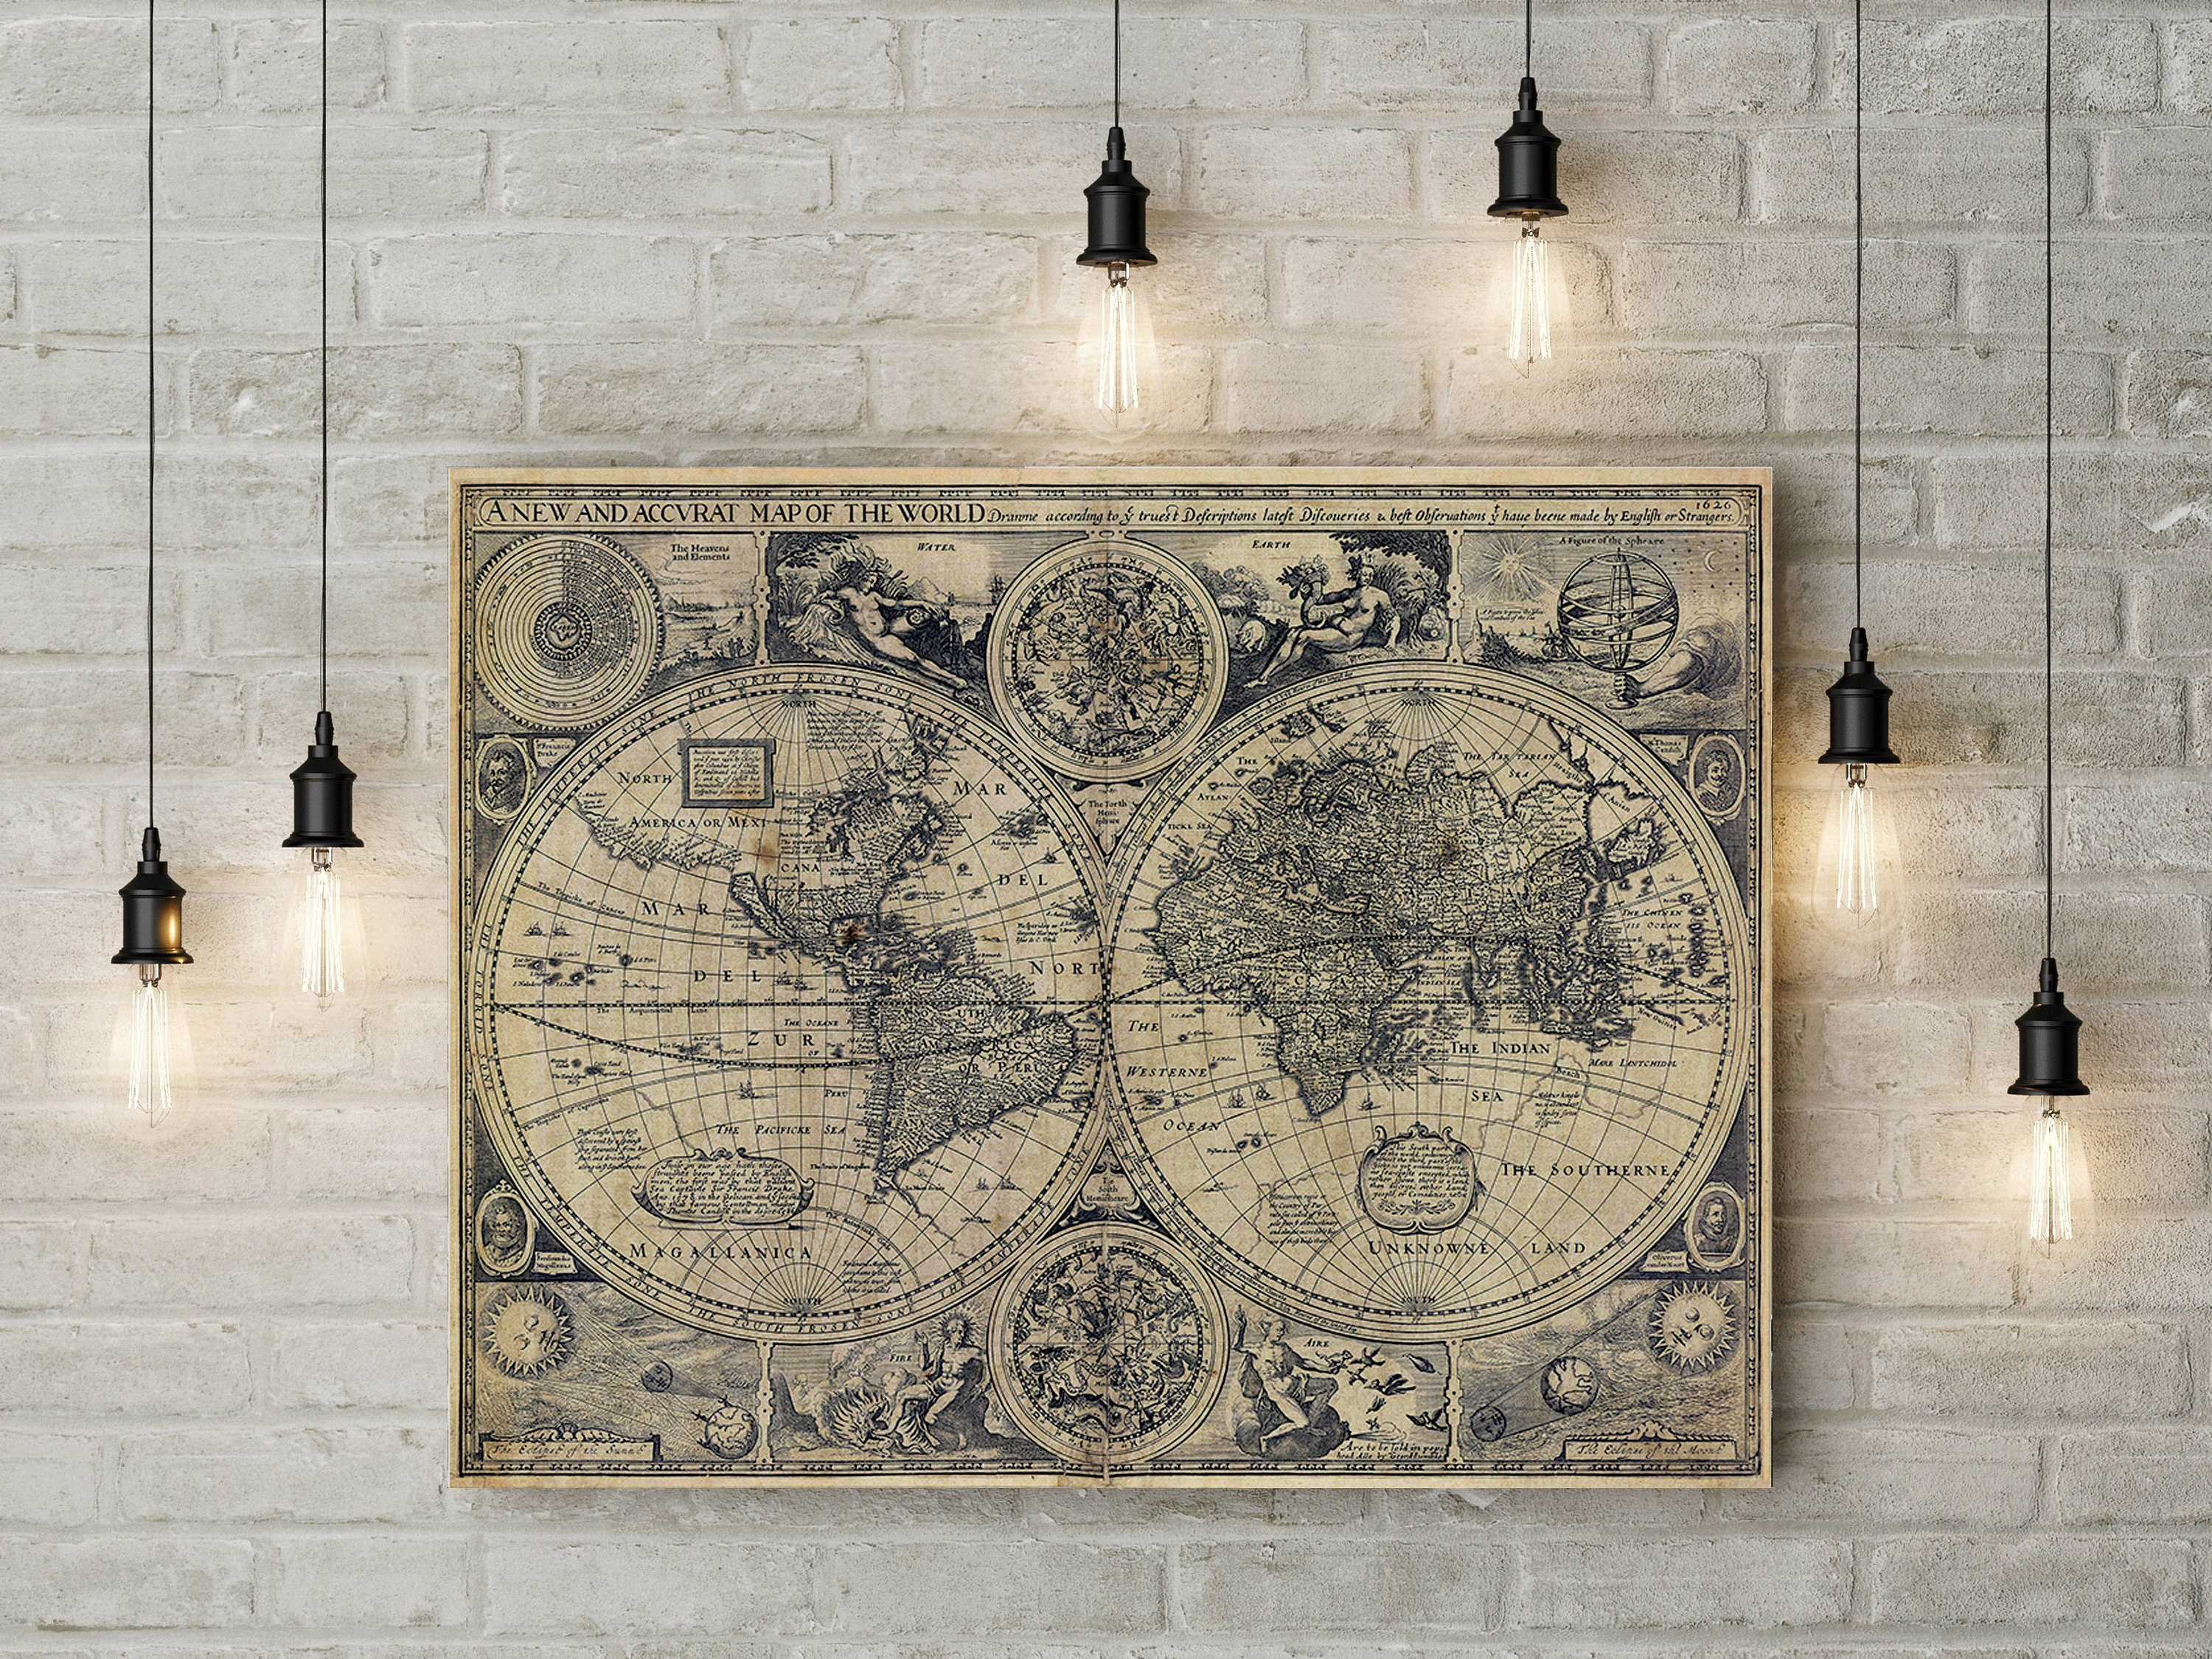 A New And Accvrat Map Of The World 1626.Old World Map World Map Wall Art Antique World Map Large Map Of